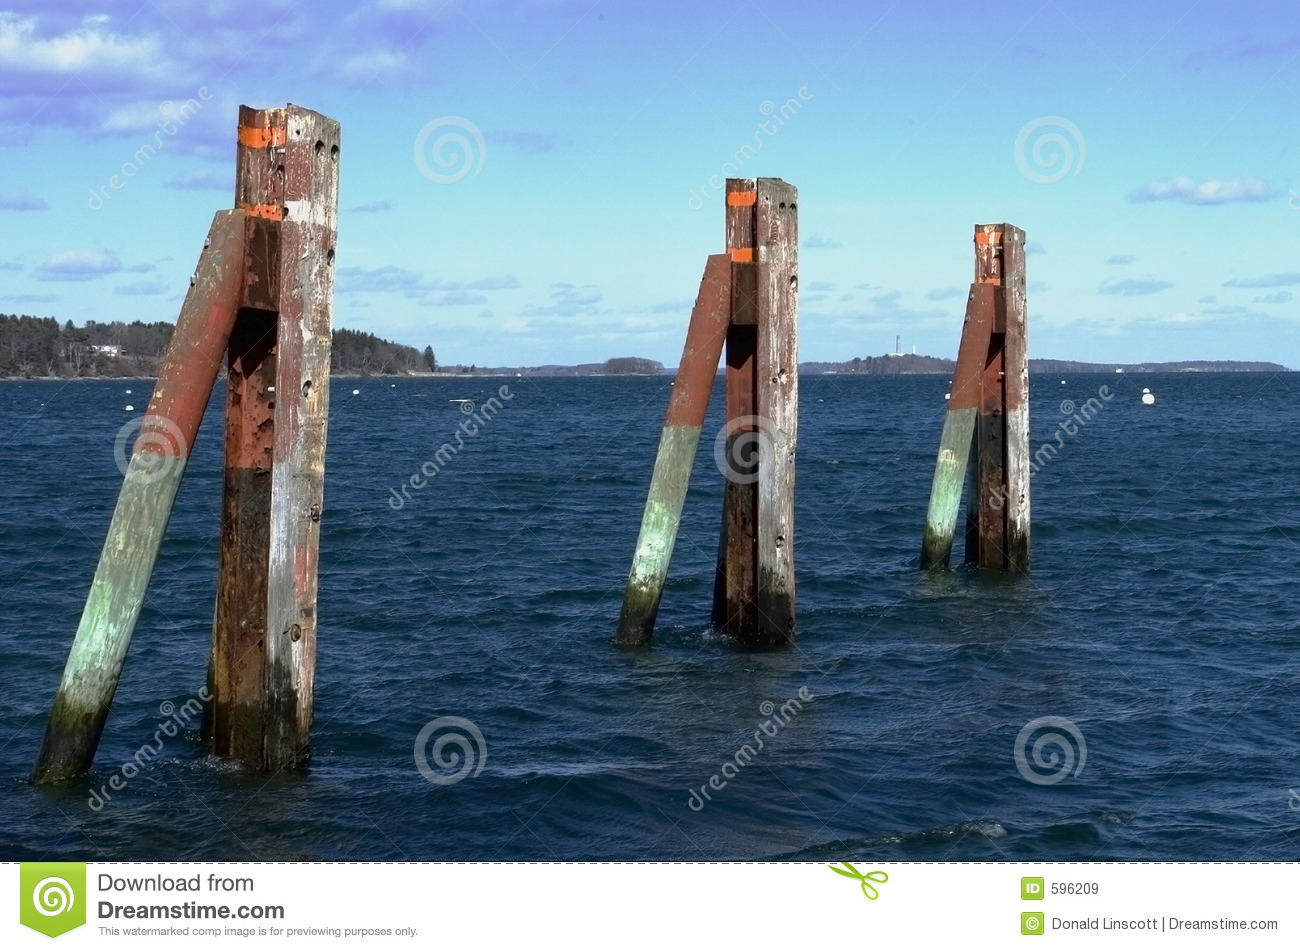 Dock pilings clipart. Pirate Diary.